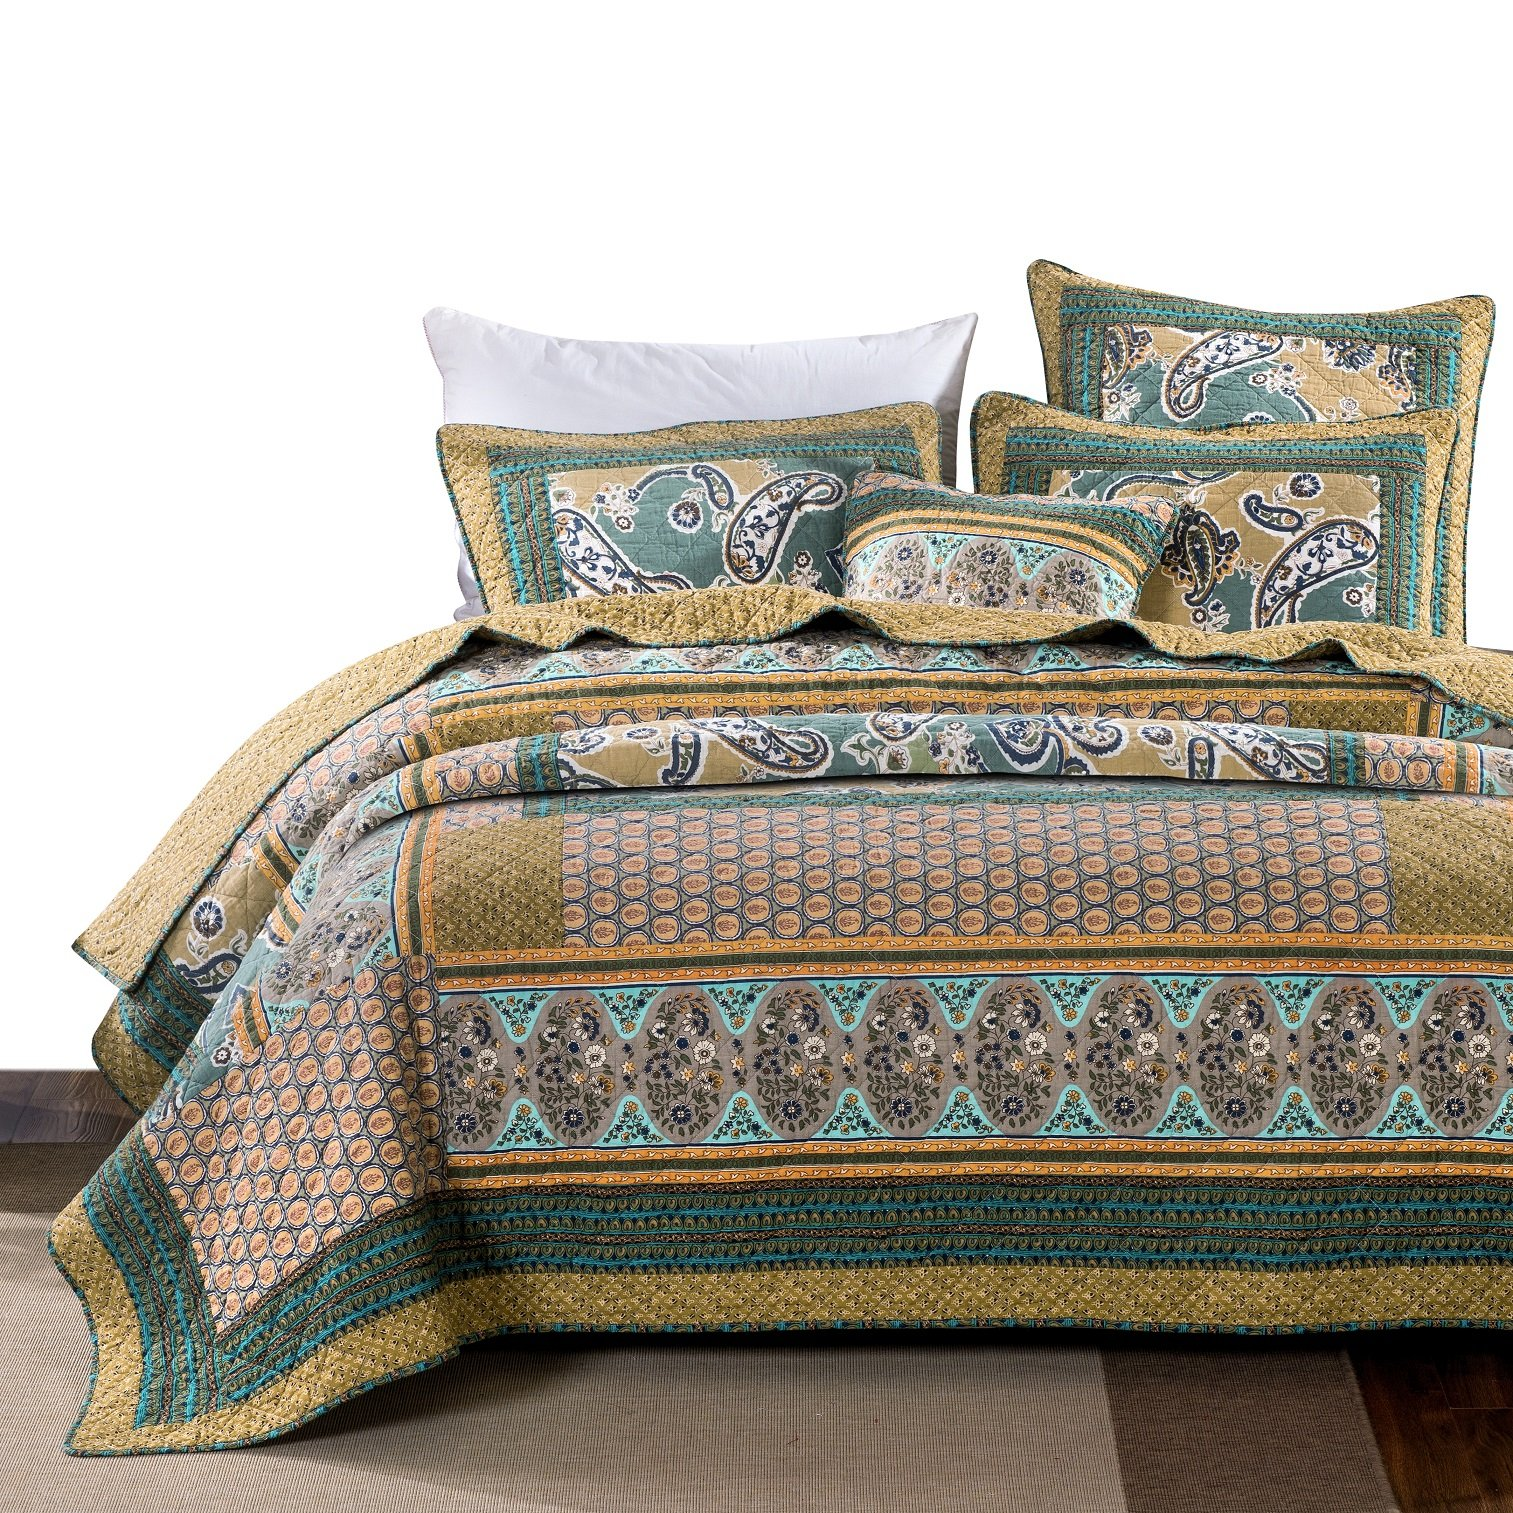 DaDa Bedding Bohemian Paisley Quilt - Green Tea Dreams Bedspread Set - Cotton Patchwork Floral Bright Vibrant - Multi Colorful Yellow Blue Olive - King - 3-Pieces